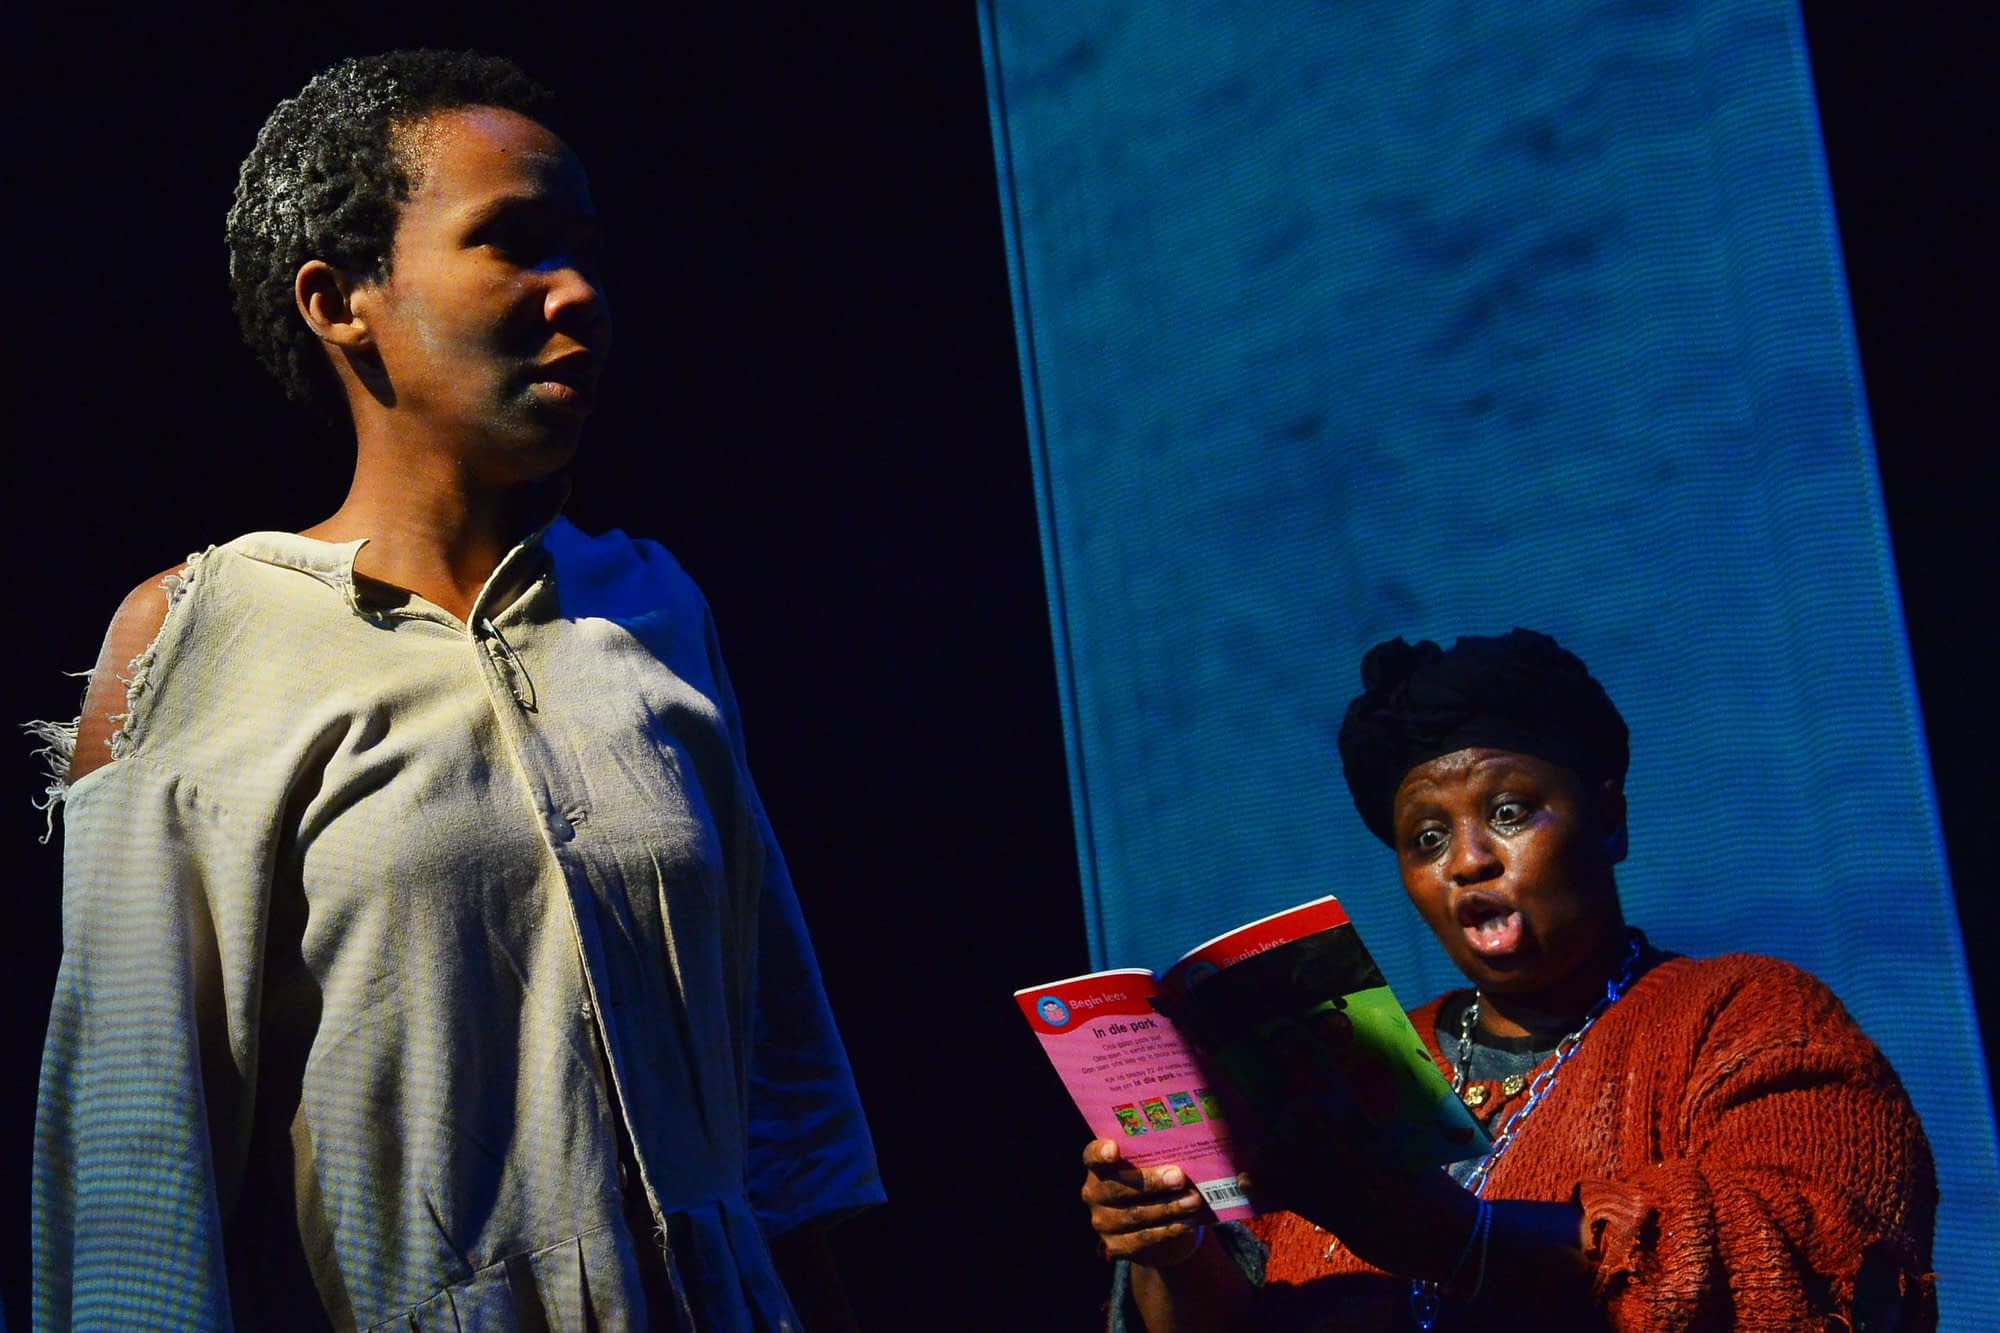 Xova written and directed by Joseph Kumani at the Market Theatre (Photos by Lungelo Mbulwana)